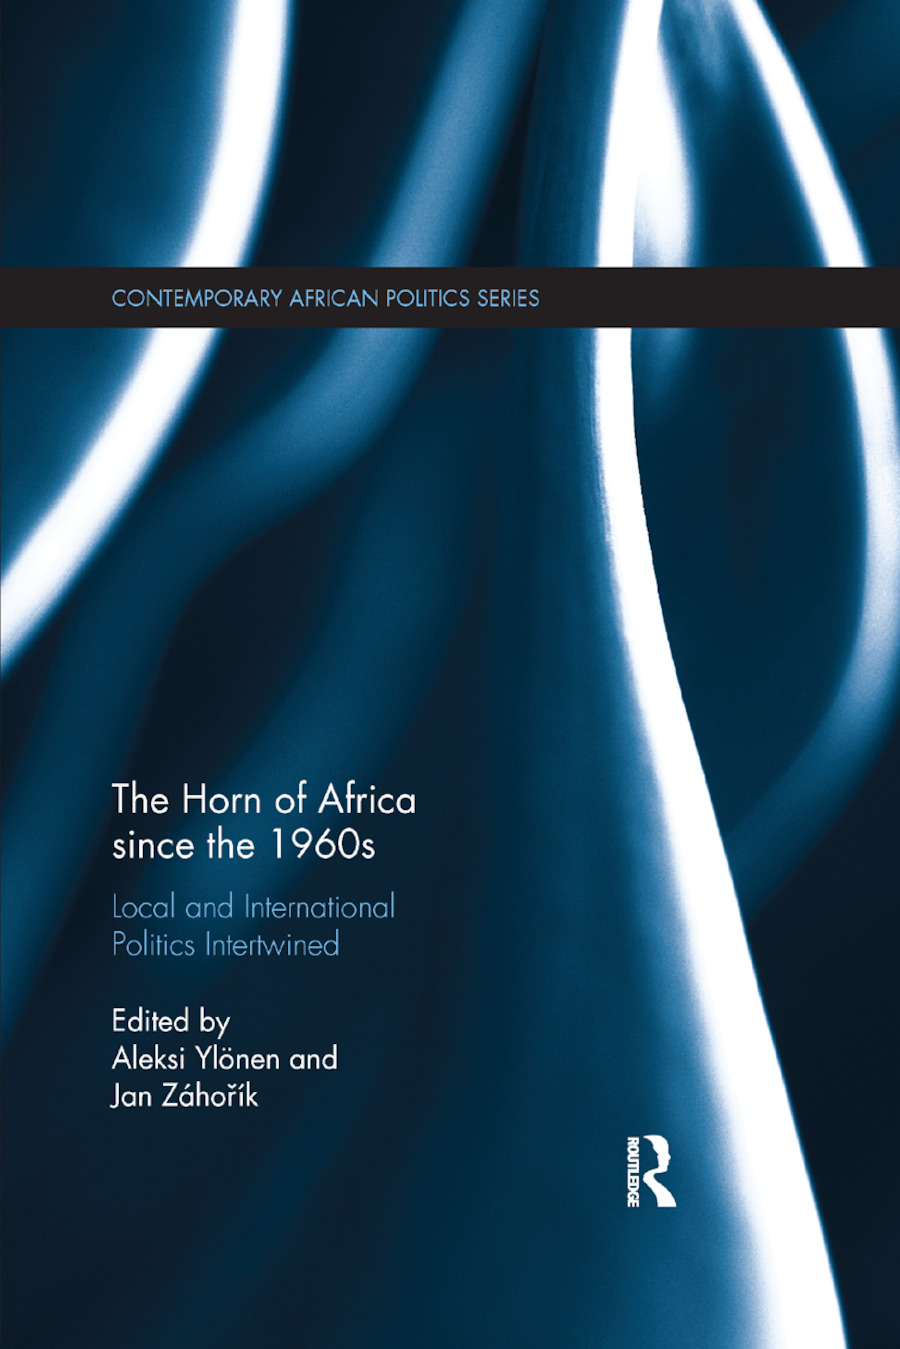 The Horn of Africa since the 1960s